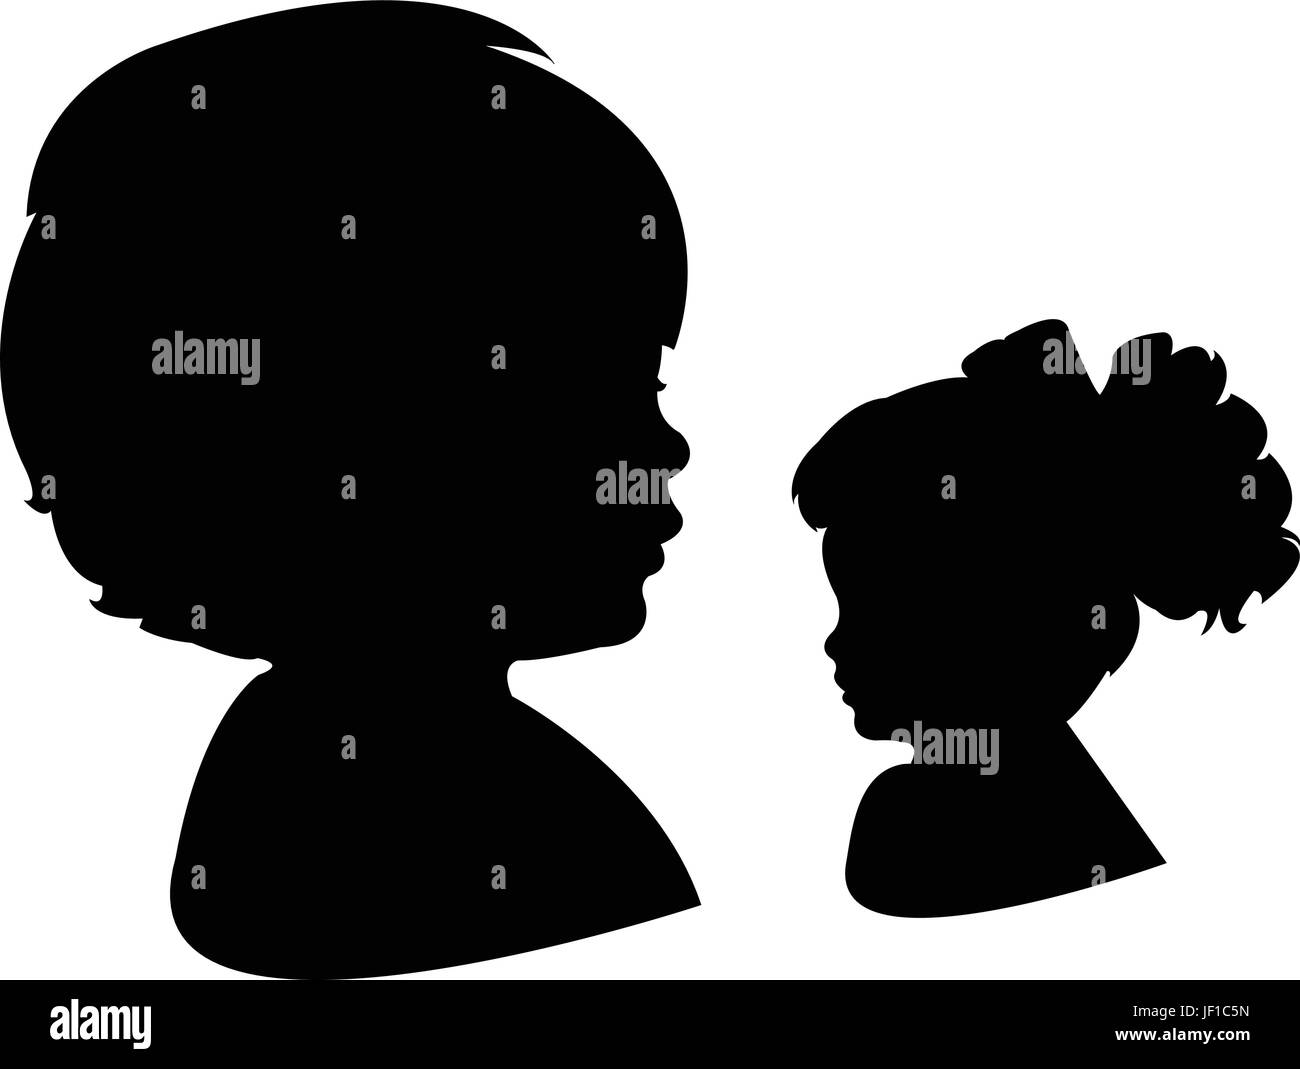 profile, humans, human beings, people, folk, persons, human, human being, Stock Vector